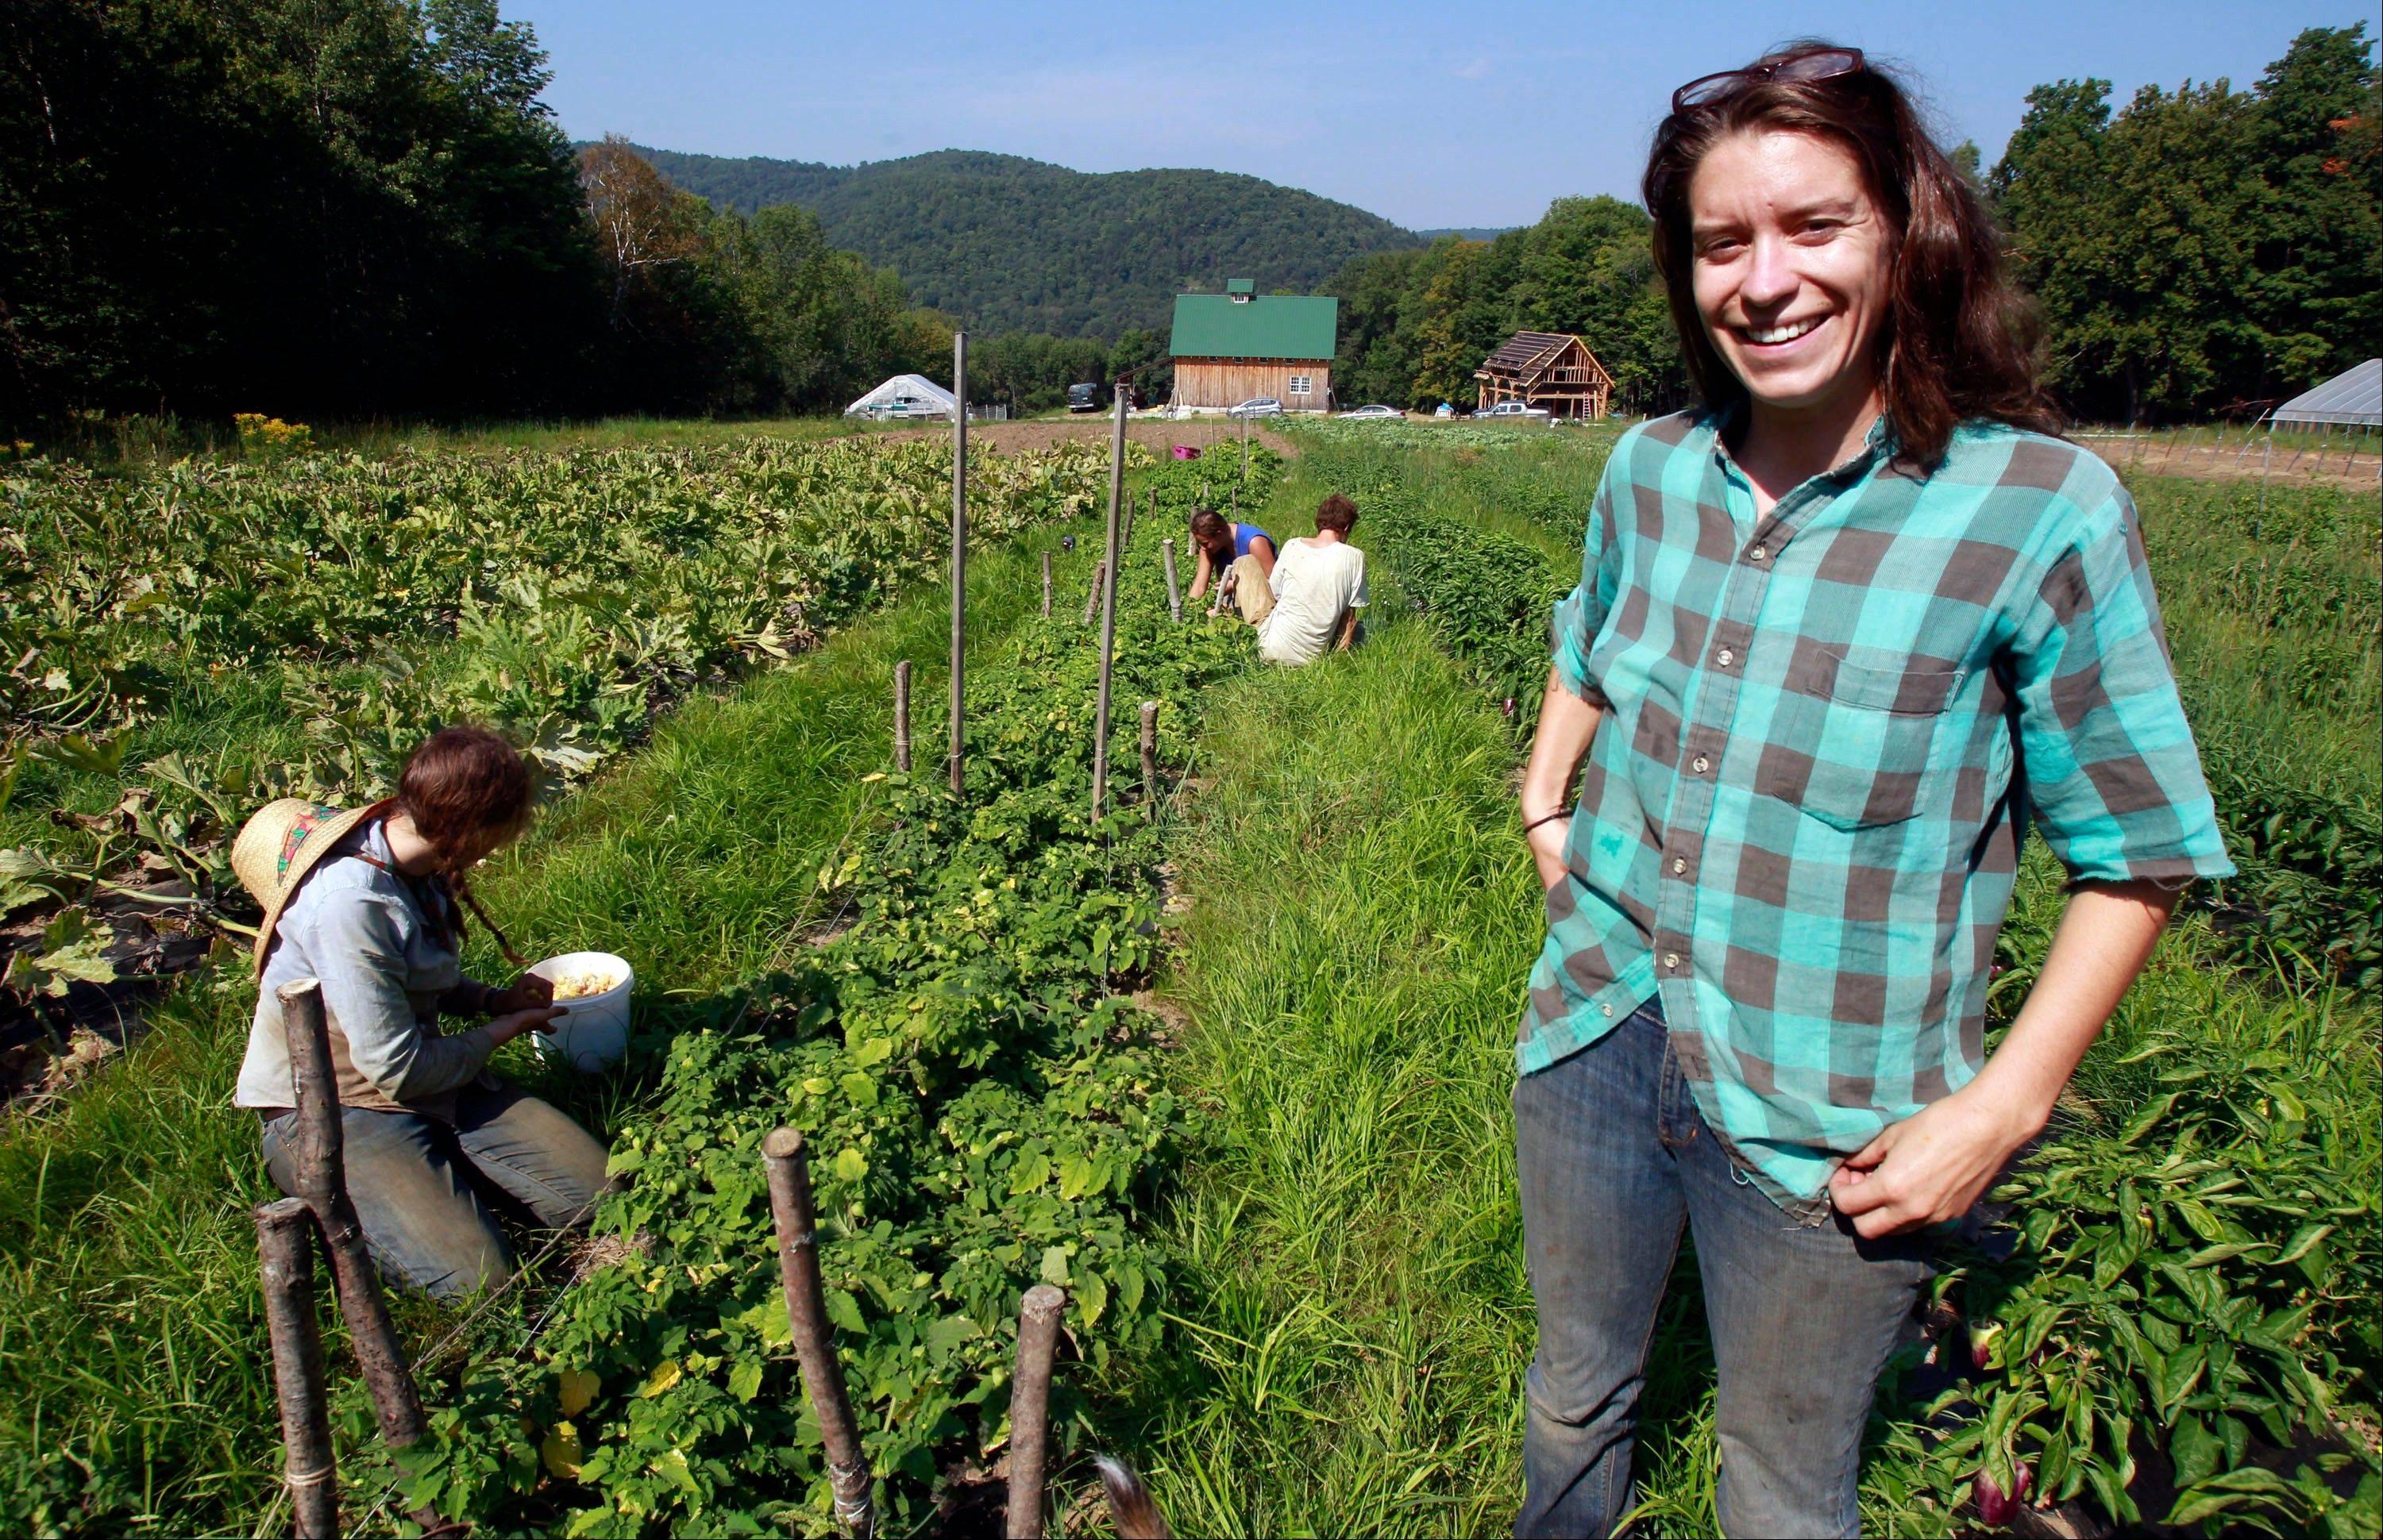 Kara Fitzgerald stands at her new farm location in Shrewsbury, Vt. Two years after Irene washed away 10 acres of summer crops and topsoil, Evening Song Farm is back selling produce � thanks in part to borrowed money and borrowed land. Today she grows crops on a hillside about a mile away.